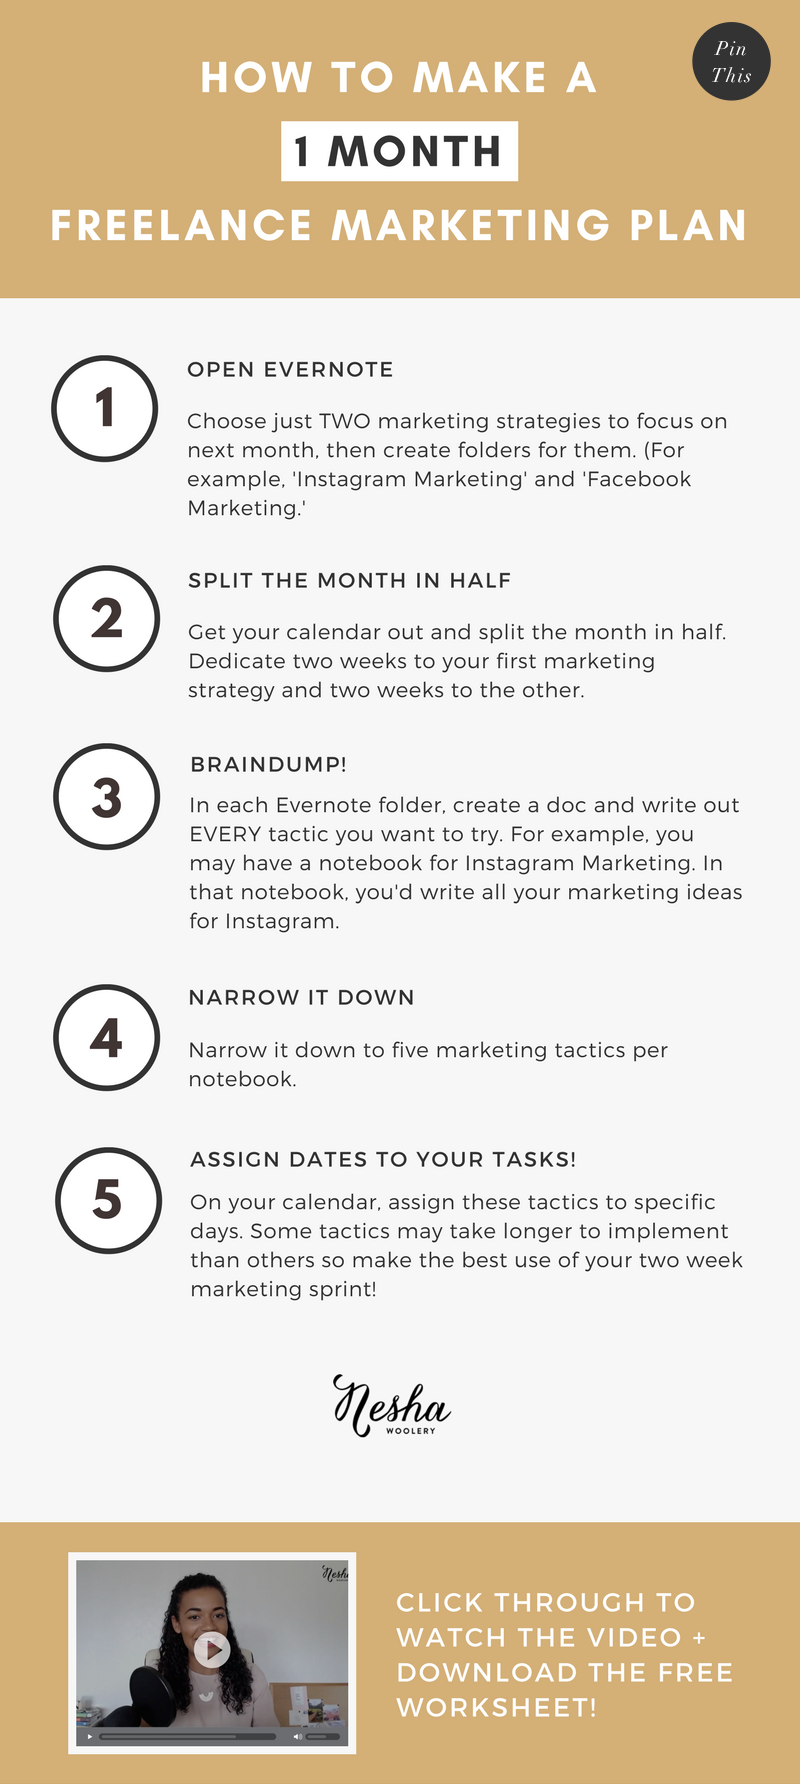 How to make a 1 month freelance marketing plan by Nesha Woolery, neshawoolery.com. Struggling to find clients? Does marketing feel scary and daunting? Click through to watch the video and download the worksheet so you can get started on creating your marketing plan!